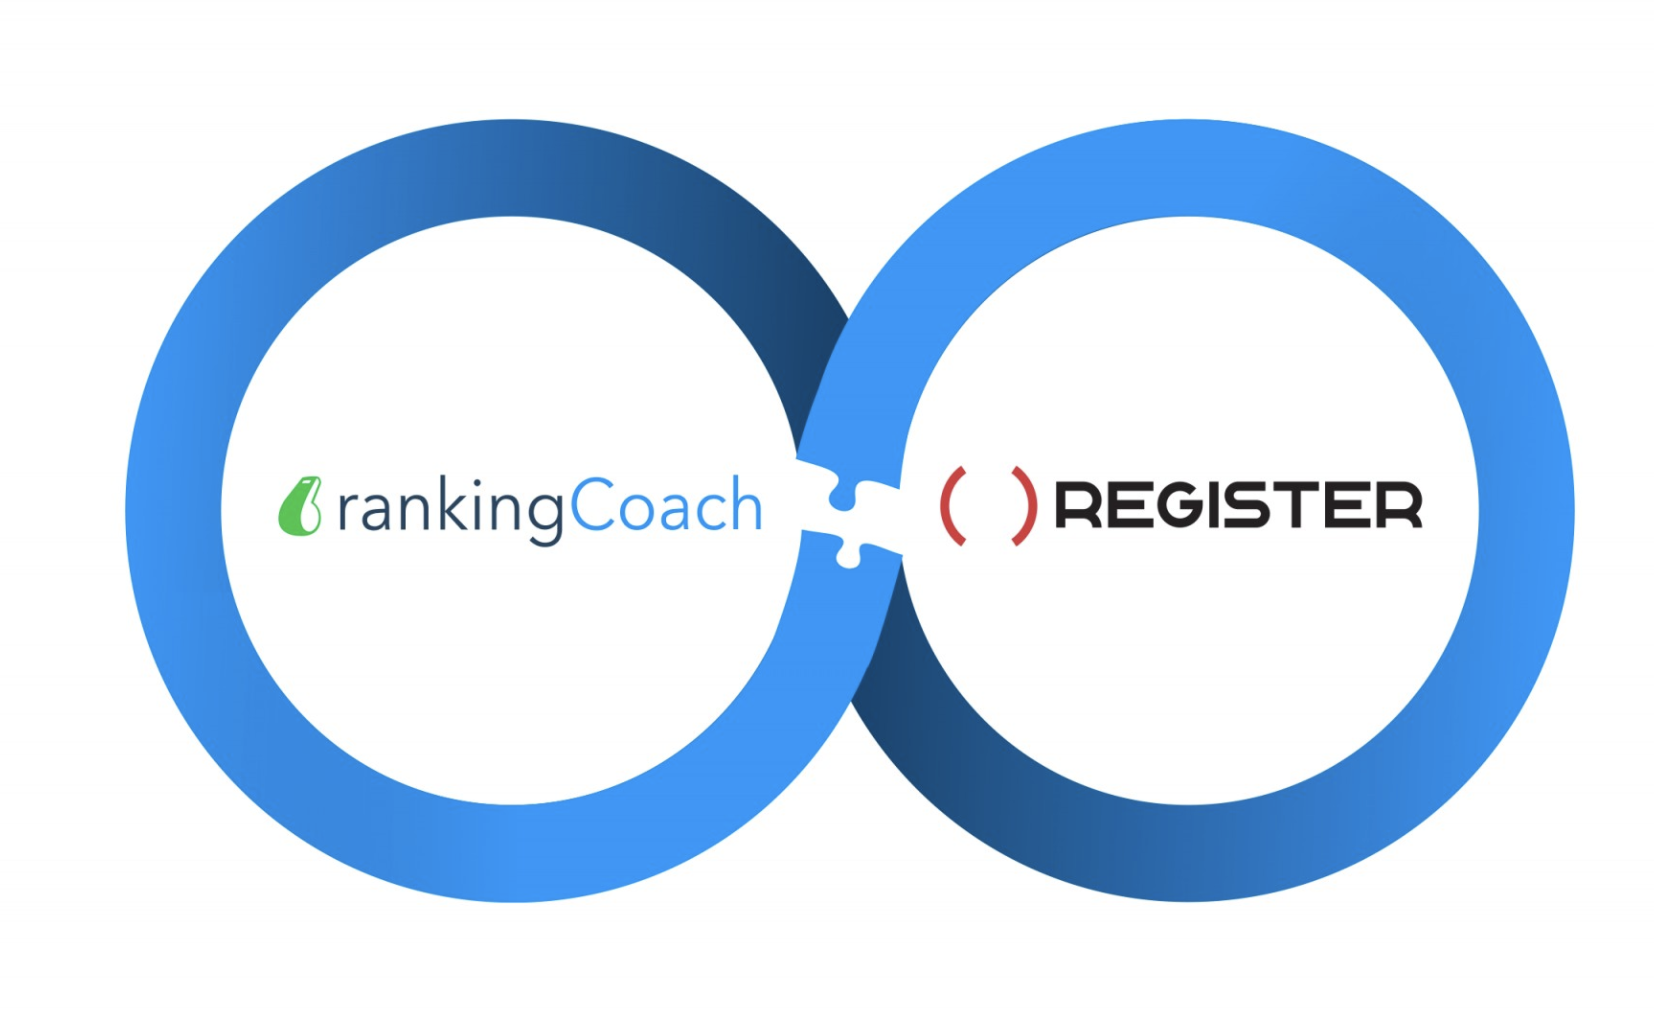 Register group and rankingCoach unite to support the visibility of small businesses and entrepreneurs